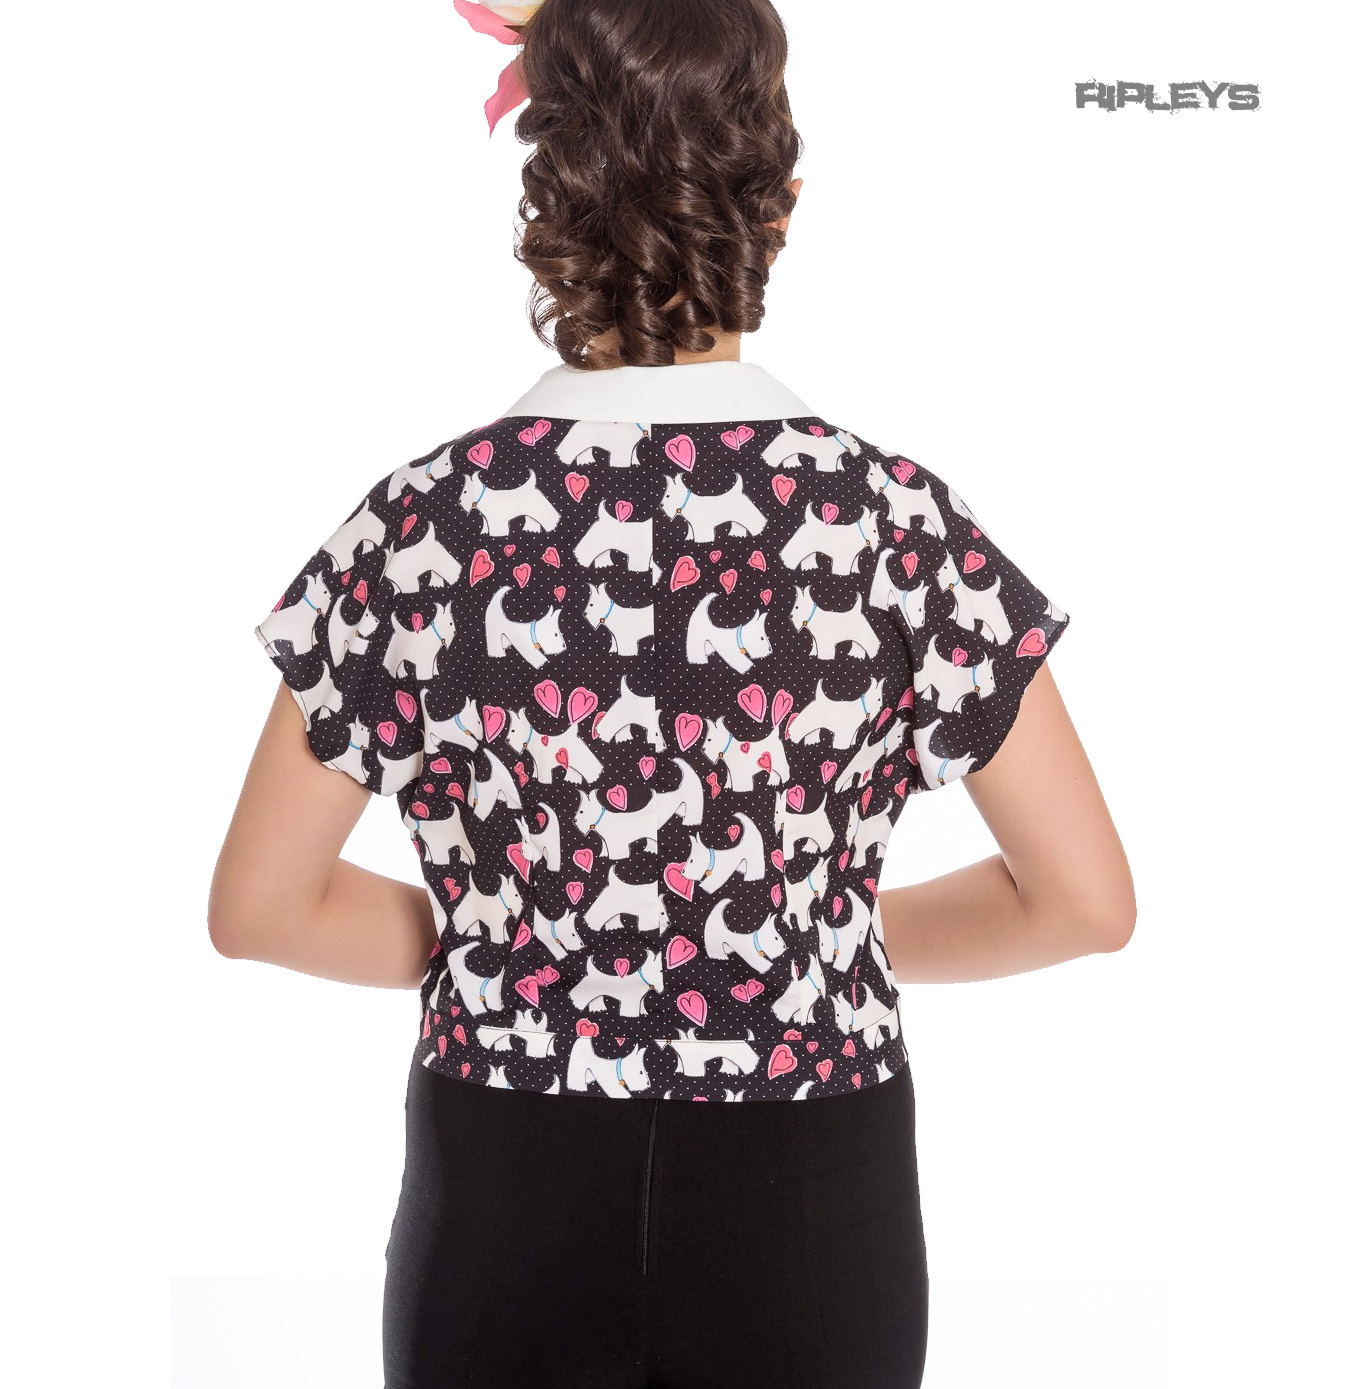 Hell-Bunny-50s-Retro-Top-Scottie-Dog-Heart-AGGY-Cropped-Blouse-Shirt-All-Sizes thumbnail 24